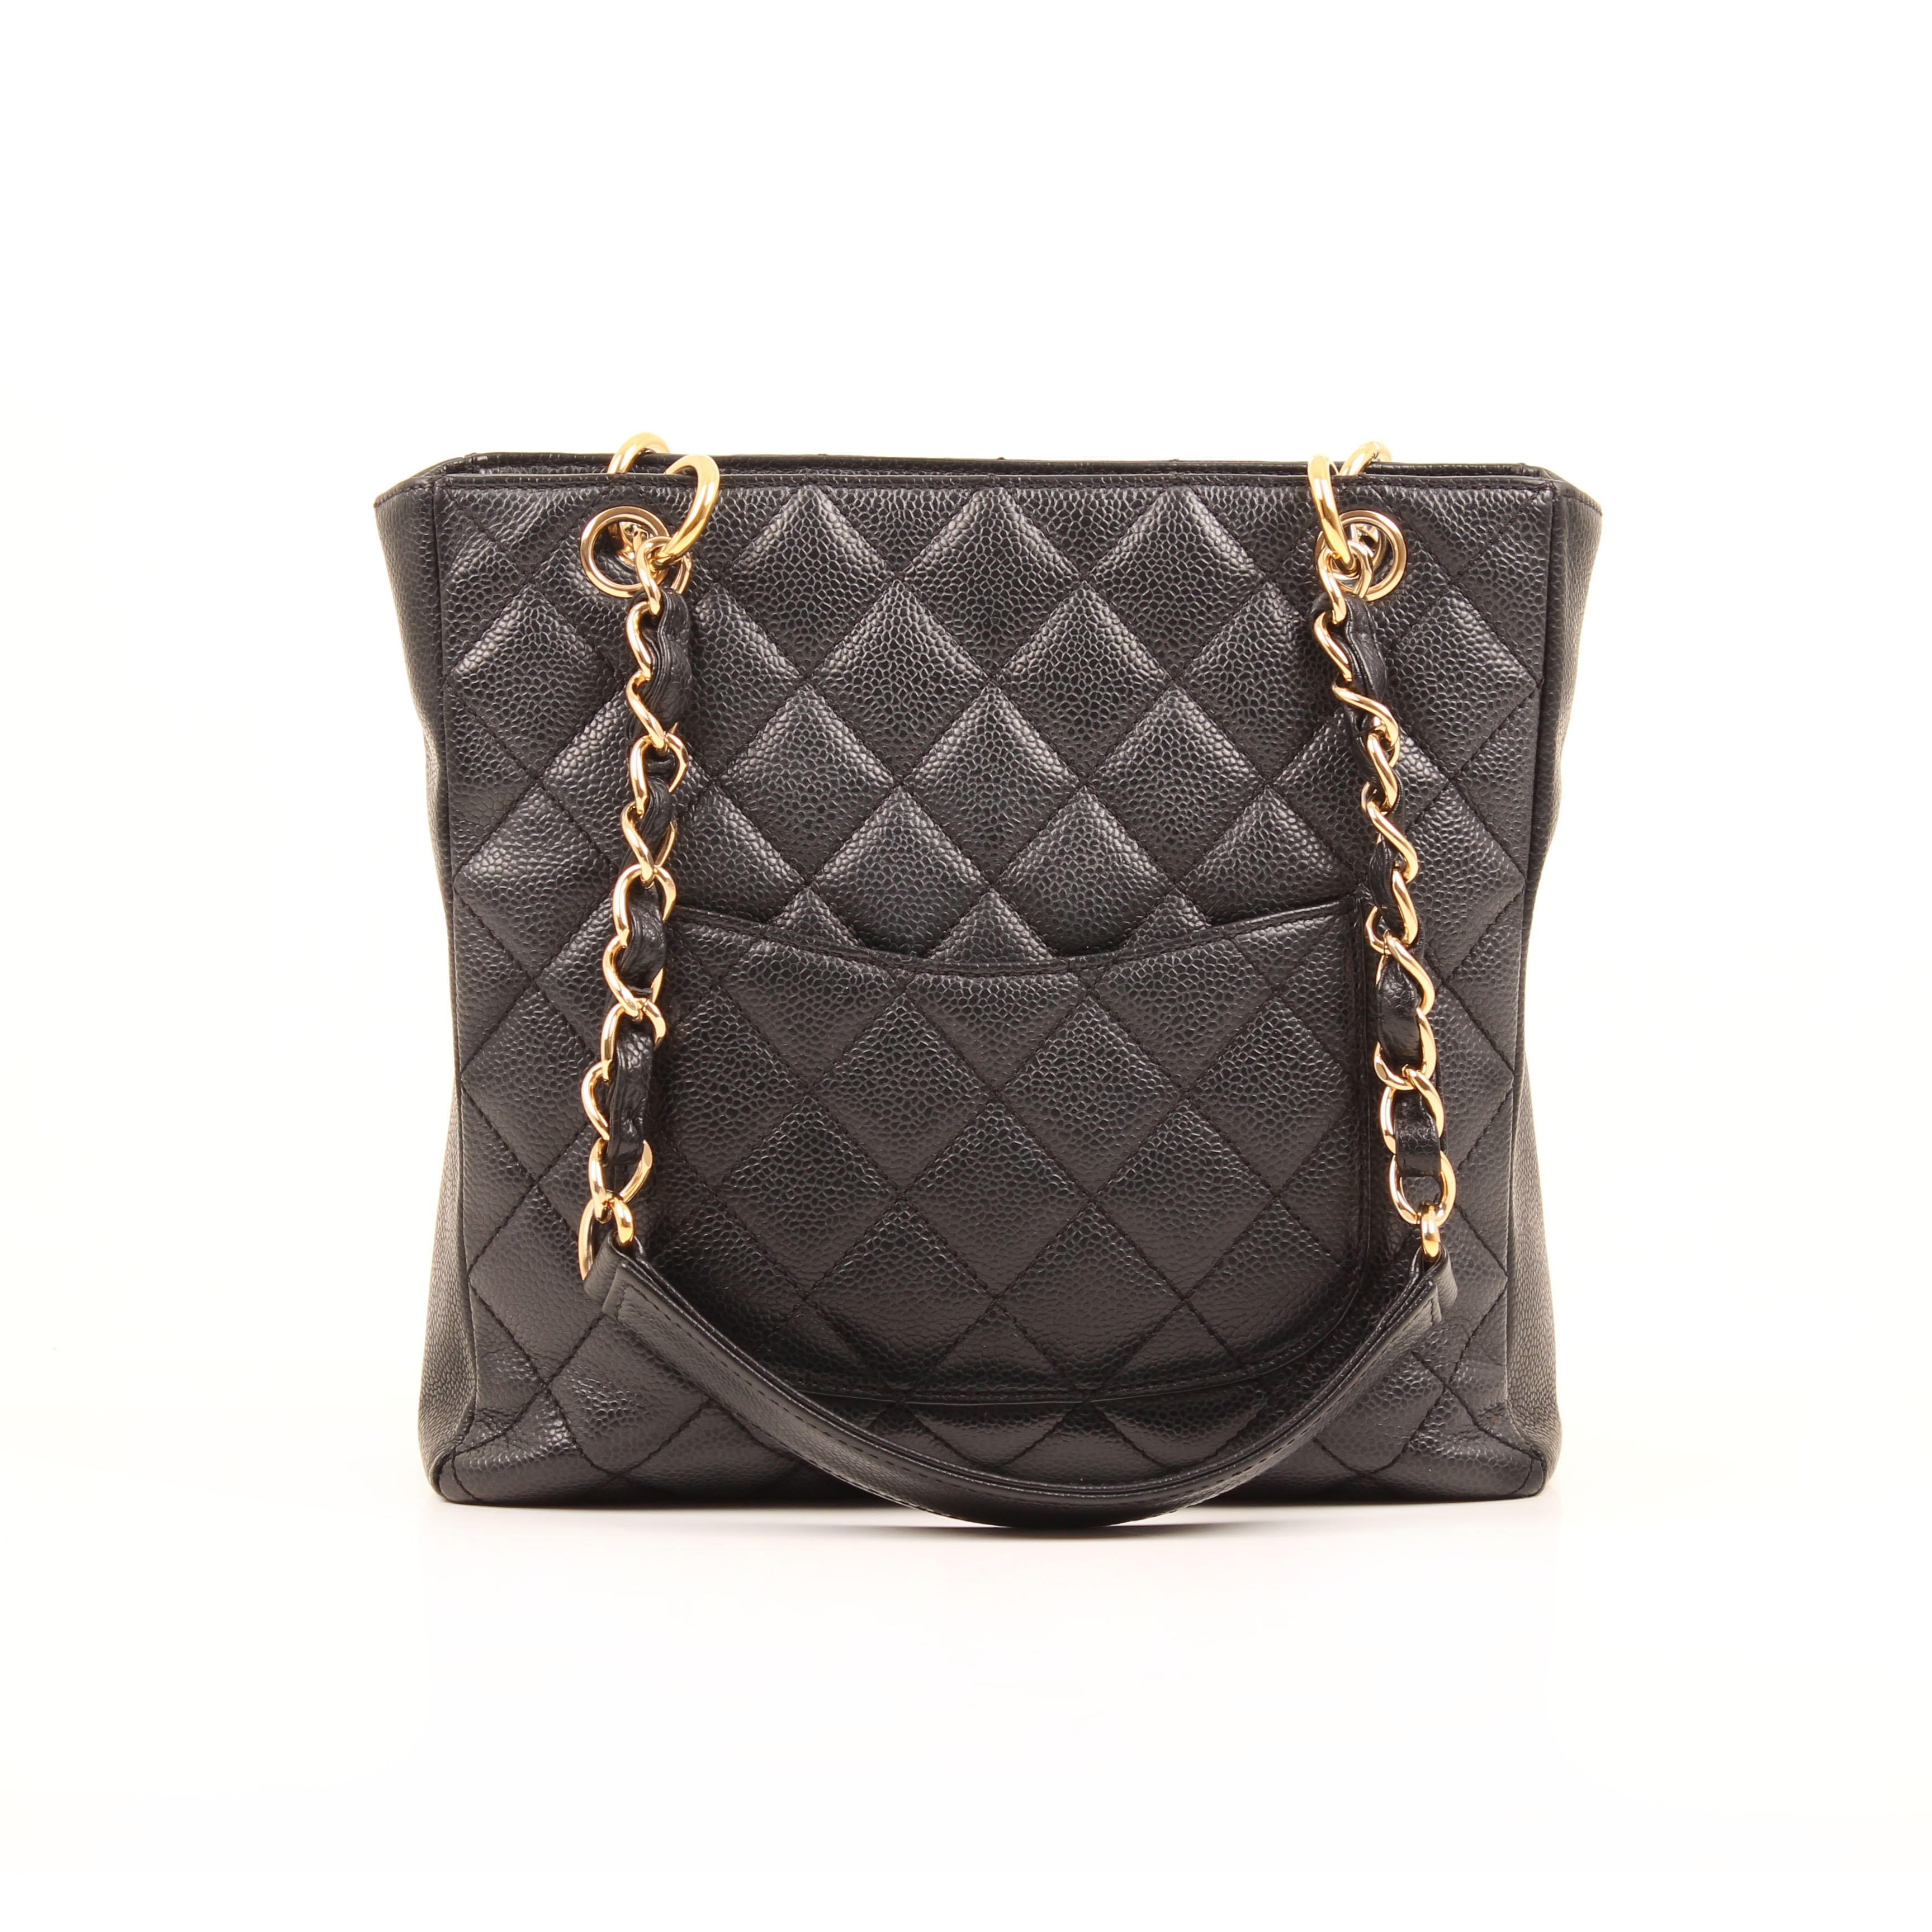 Chanel Petite Shopping Tote Caviar Leather Black Shoulder